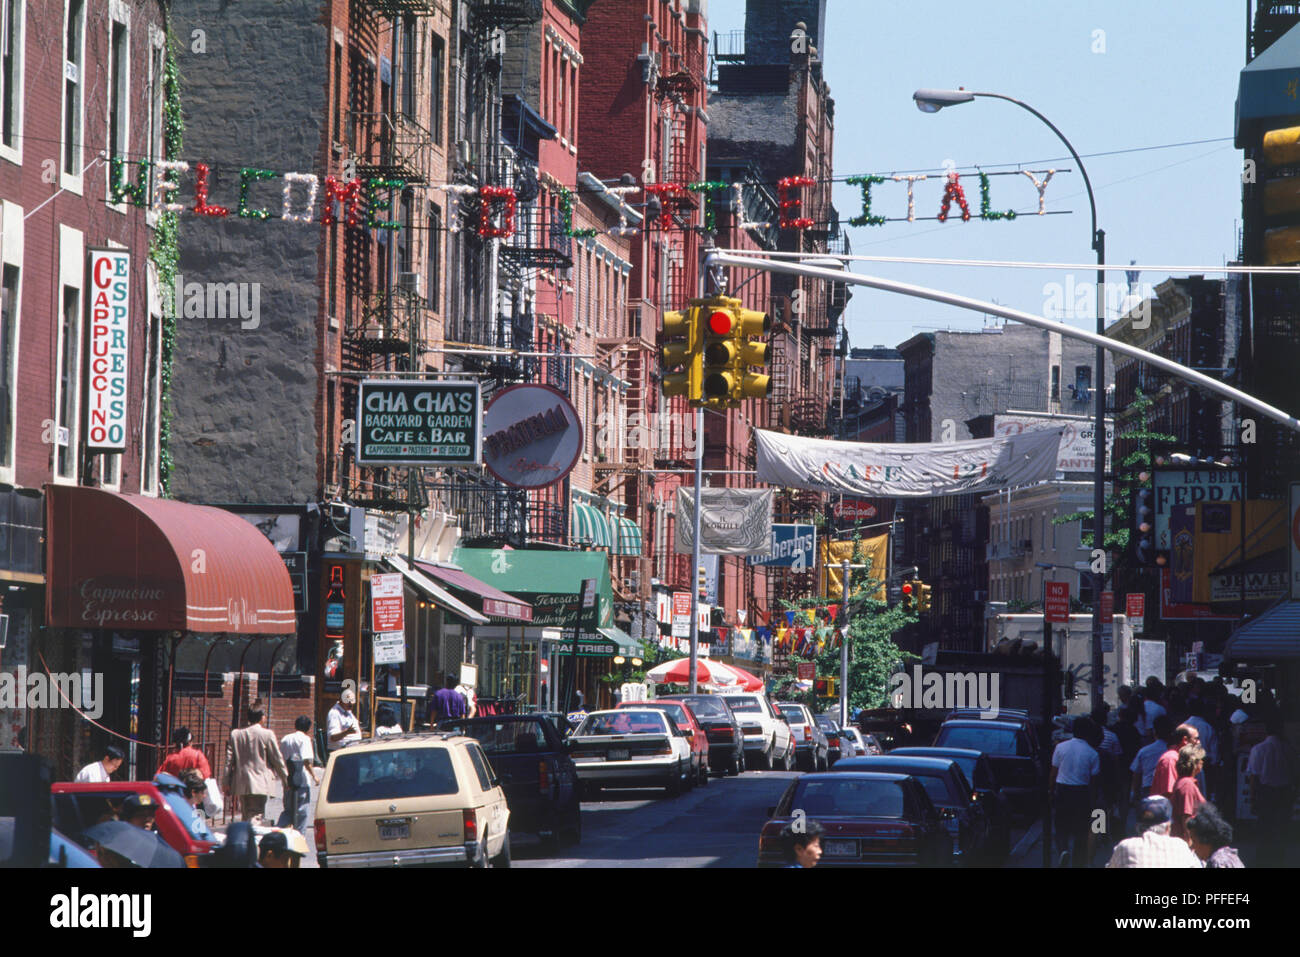 USA, New York, Manhattan, Lower East Side, busy street with Italian restaurants and shops, banner above reading 'Welcome to Little Italy'. - Stock Image